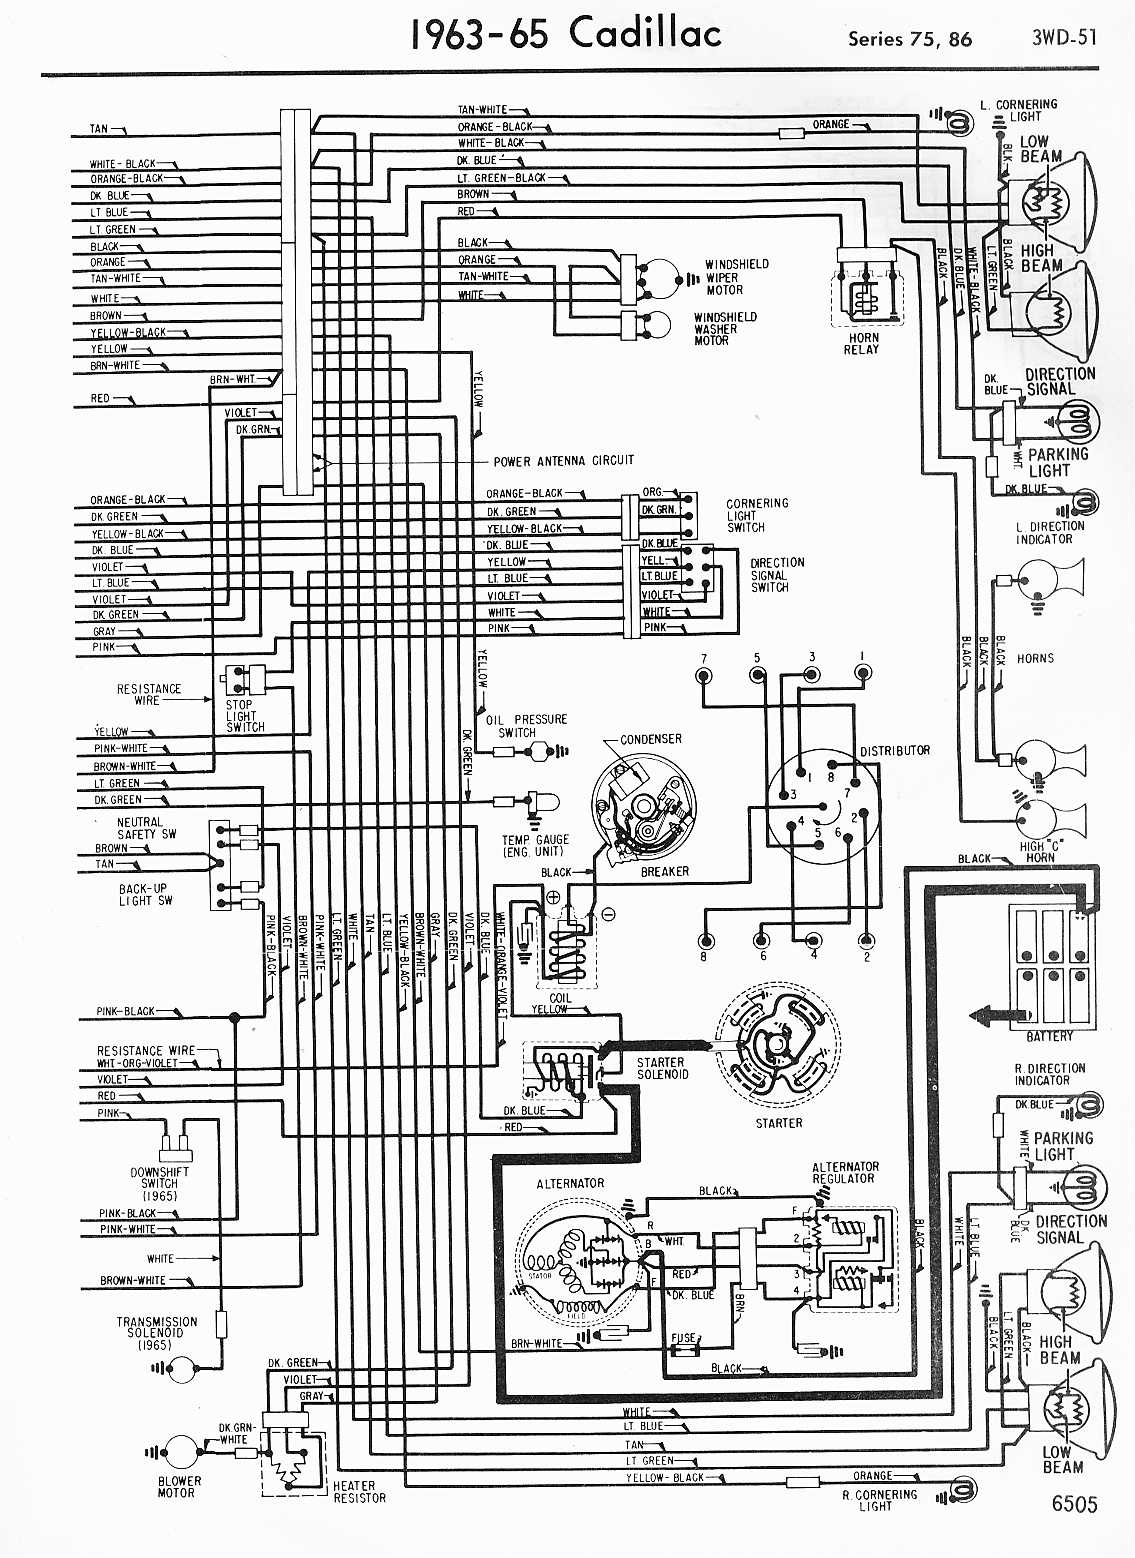 MWireCadi65_3WD 051 cadillac wiring harness ram truck wiring harness \u2022 wiring diagrams  at nearapp.co